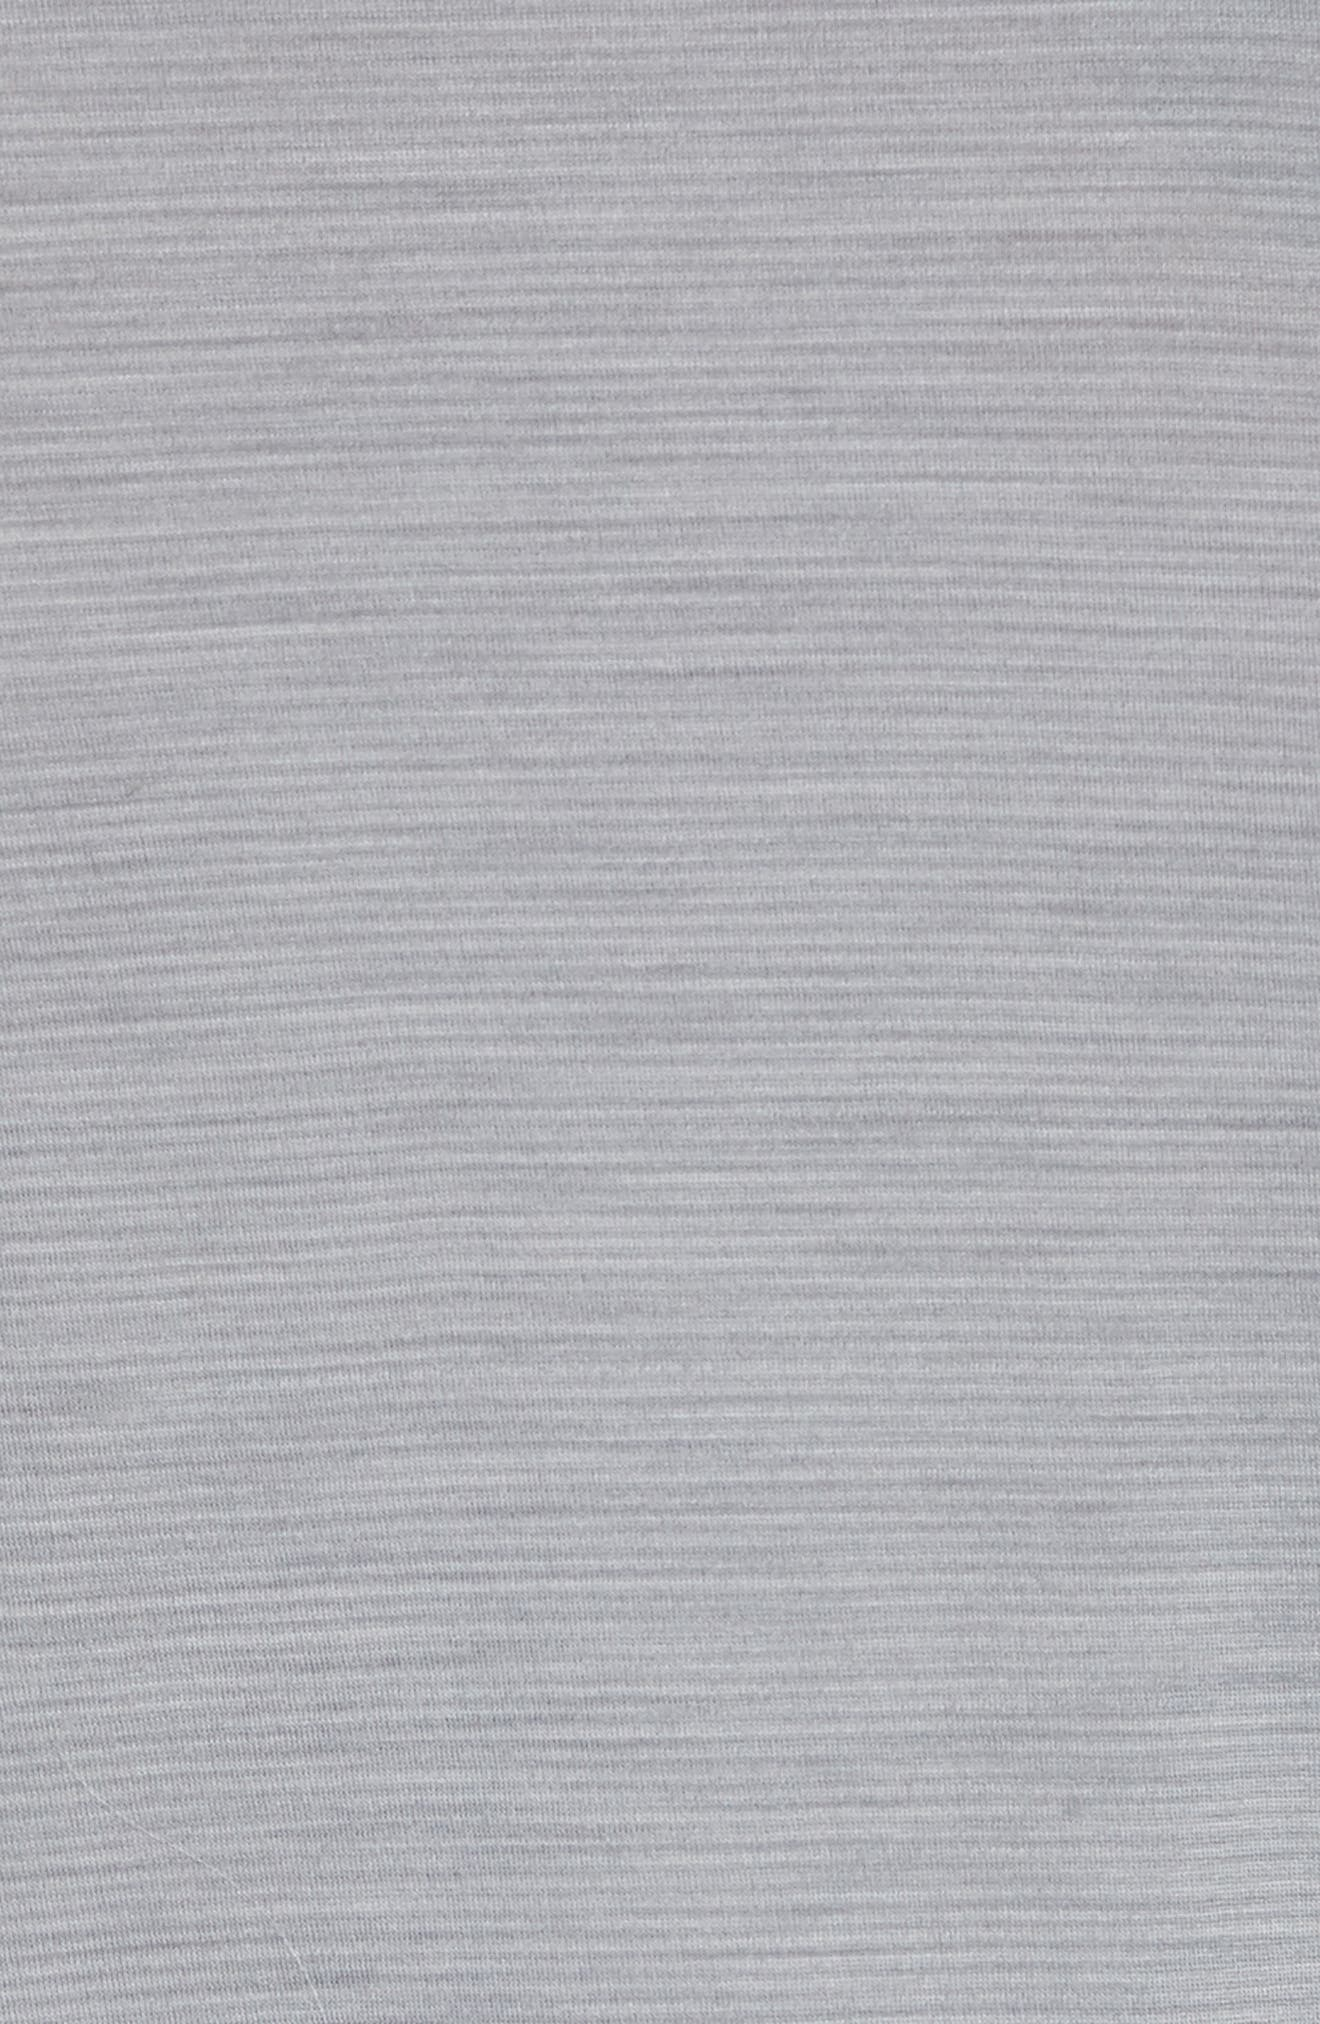 SMARTWOOL,                             Merino 150 Wool Blend Long Sleeve T-Shirt,                             Alternate thumbnail 5, color,                             LIGHT GREY